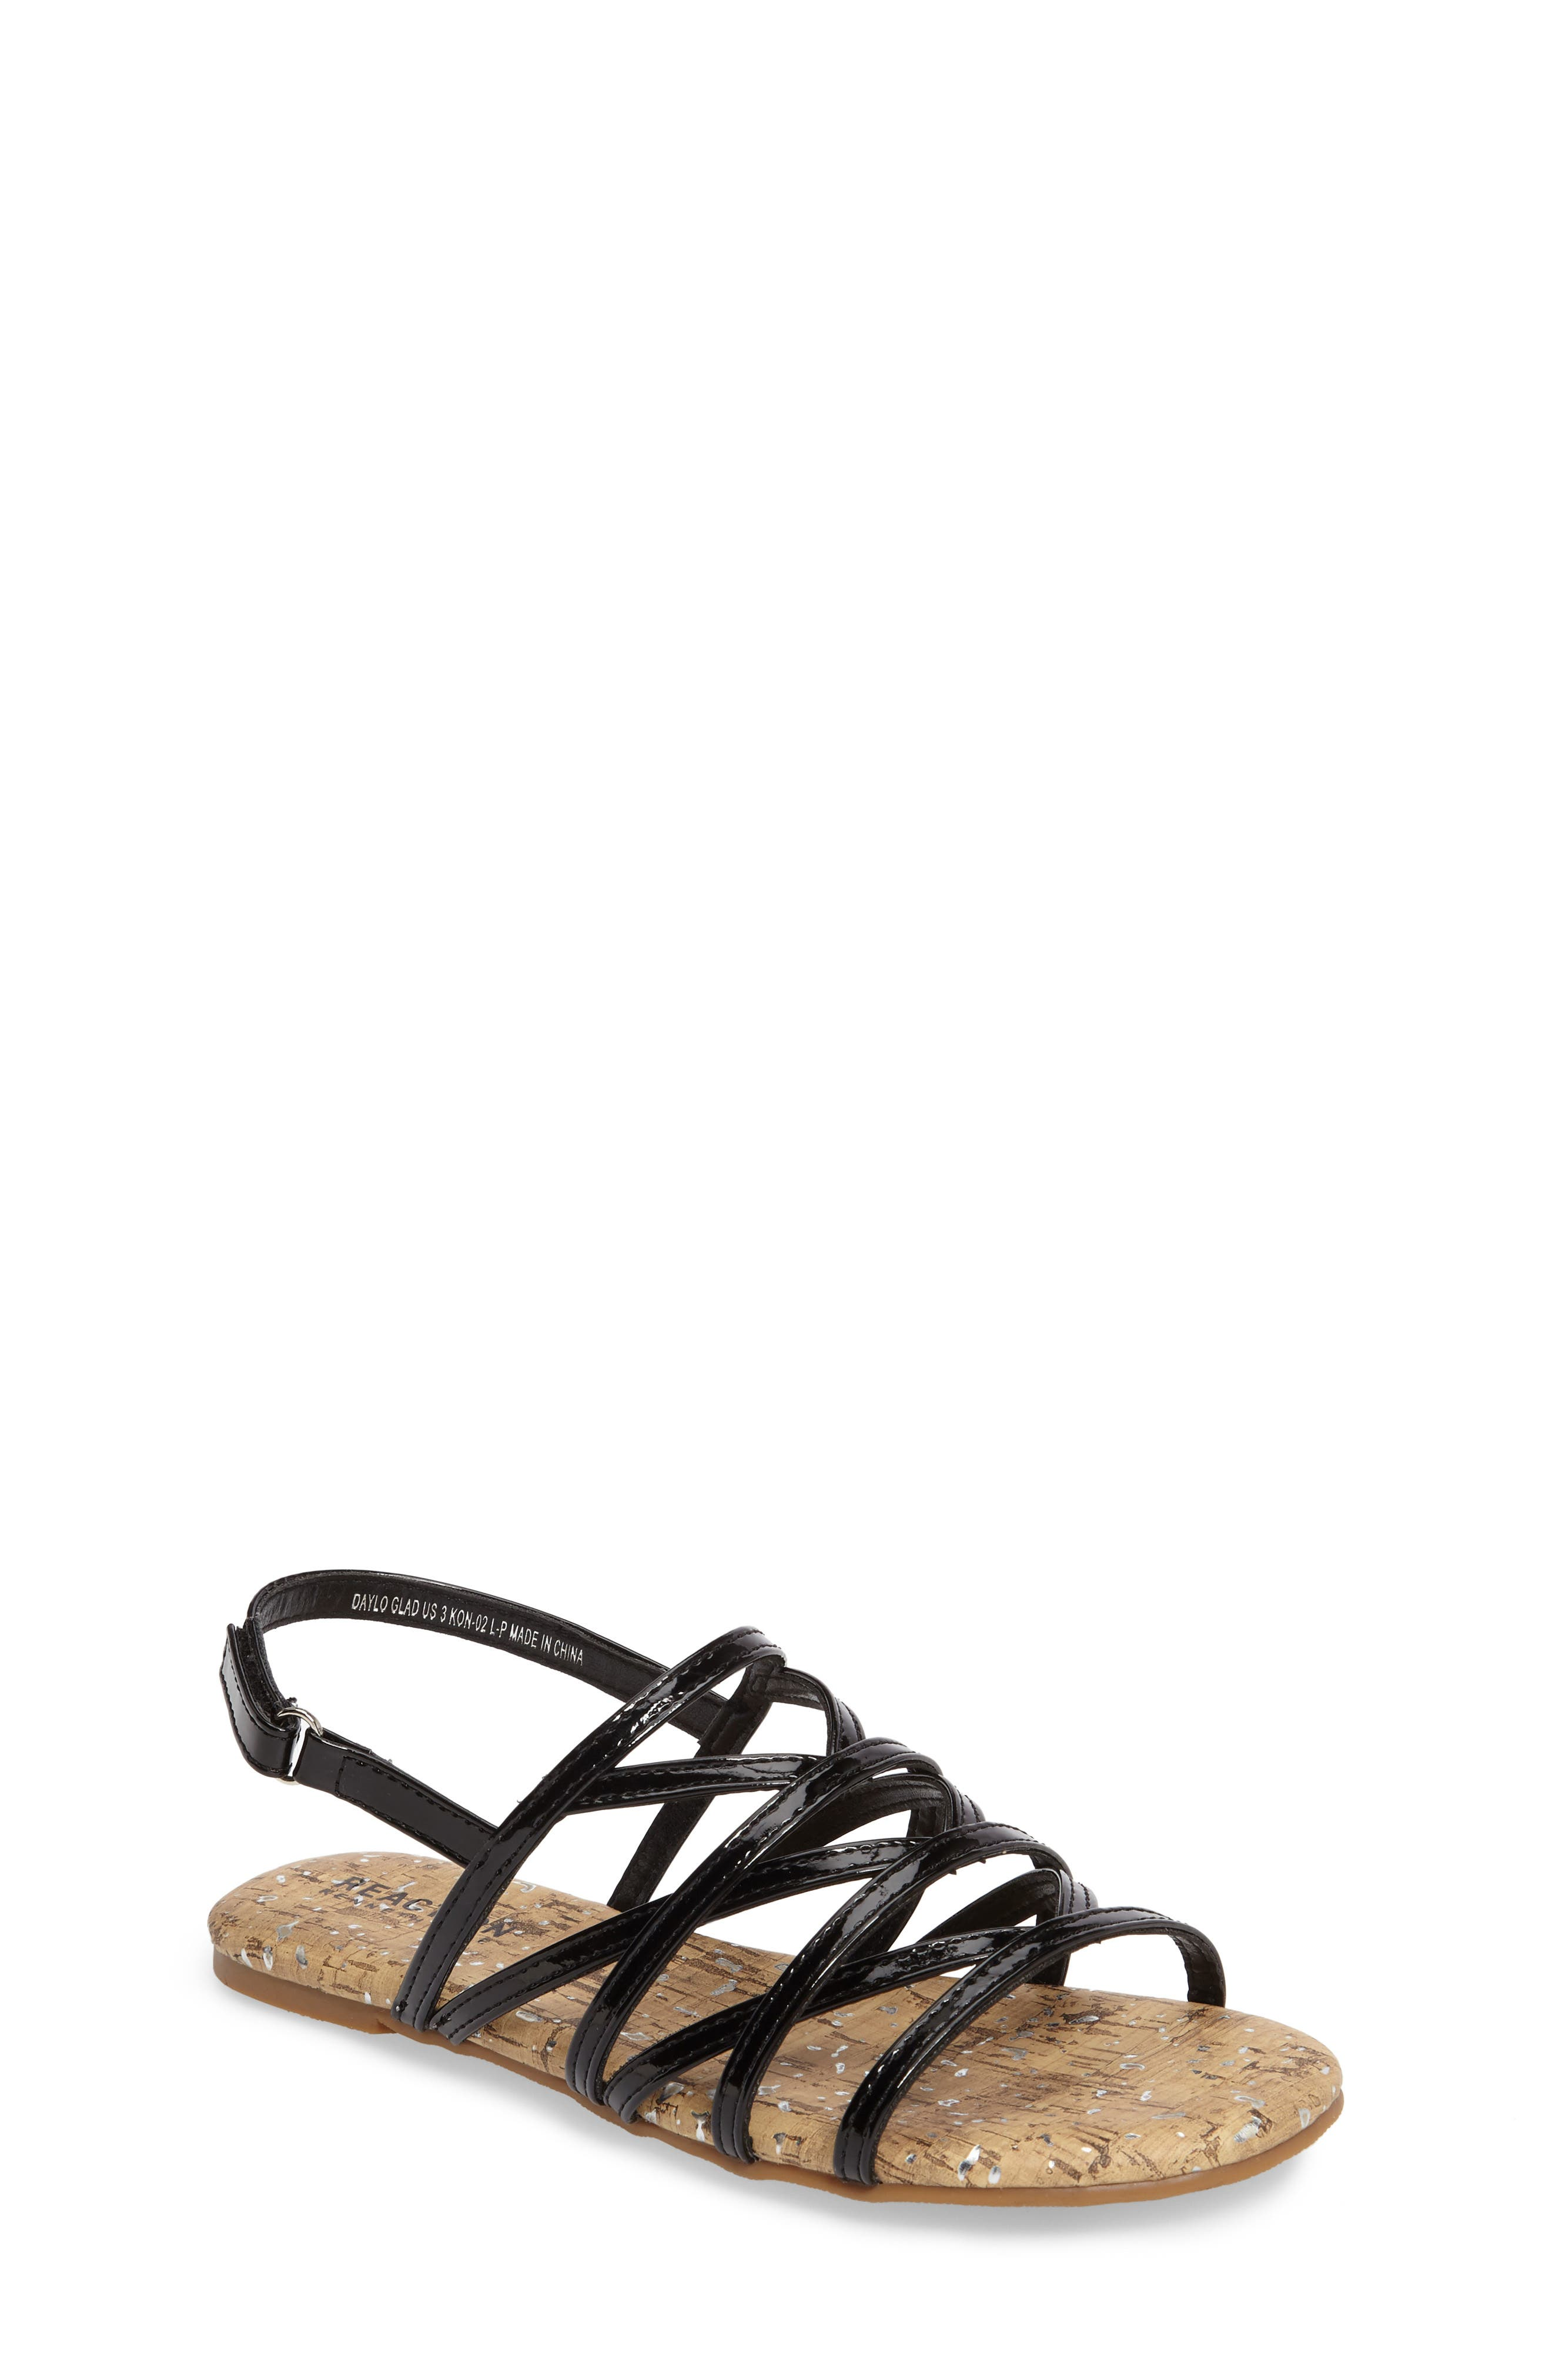 Daylo Glad Strappy Sandal,                             Main thumbnail 1, color,                             007